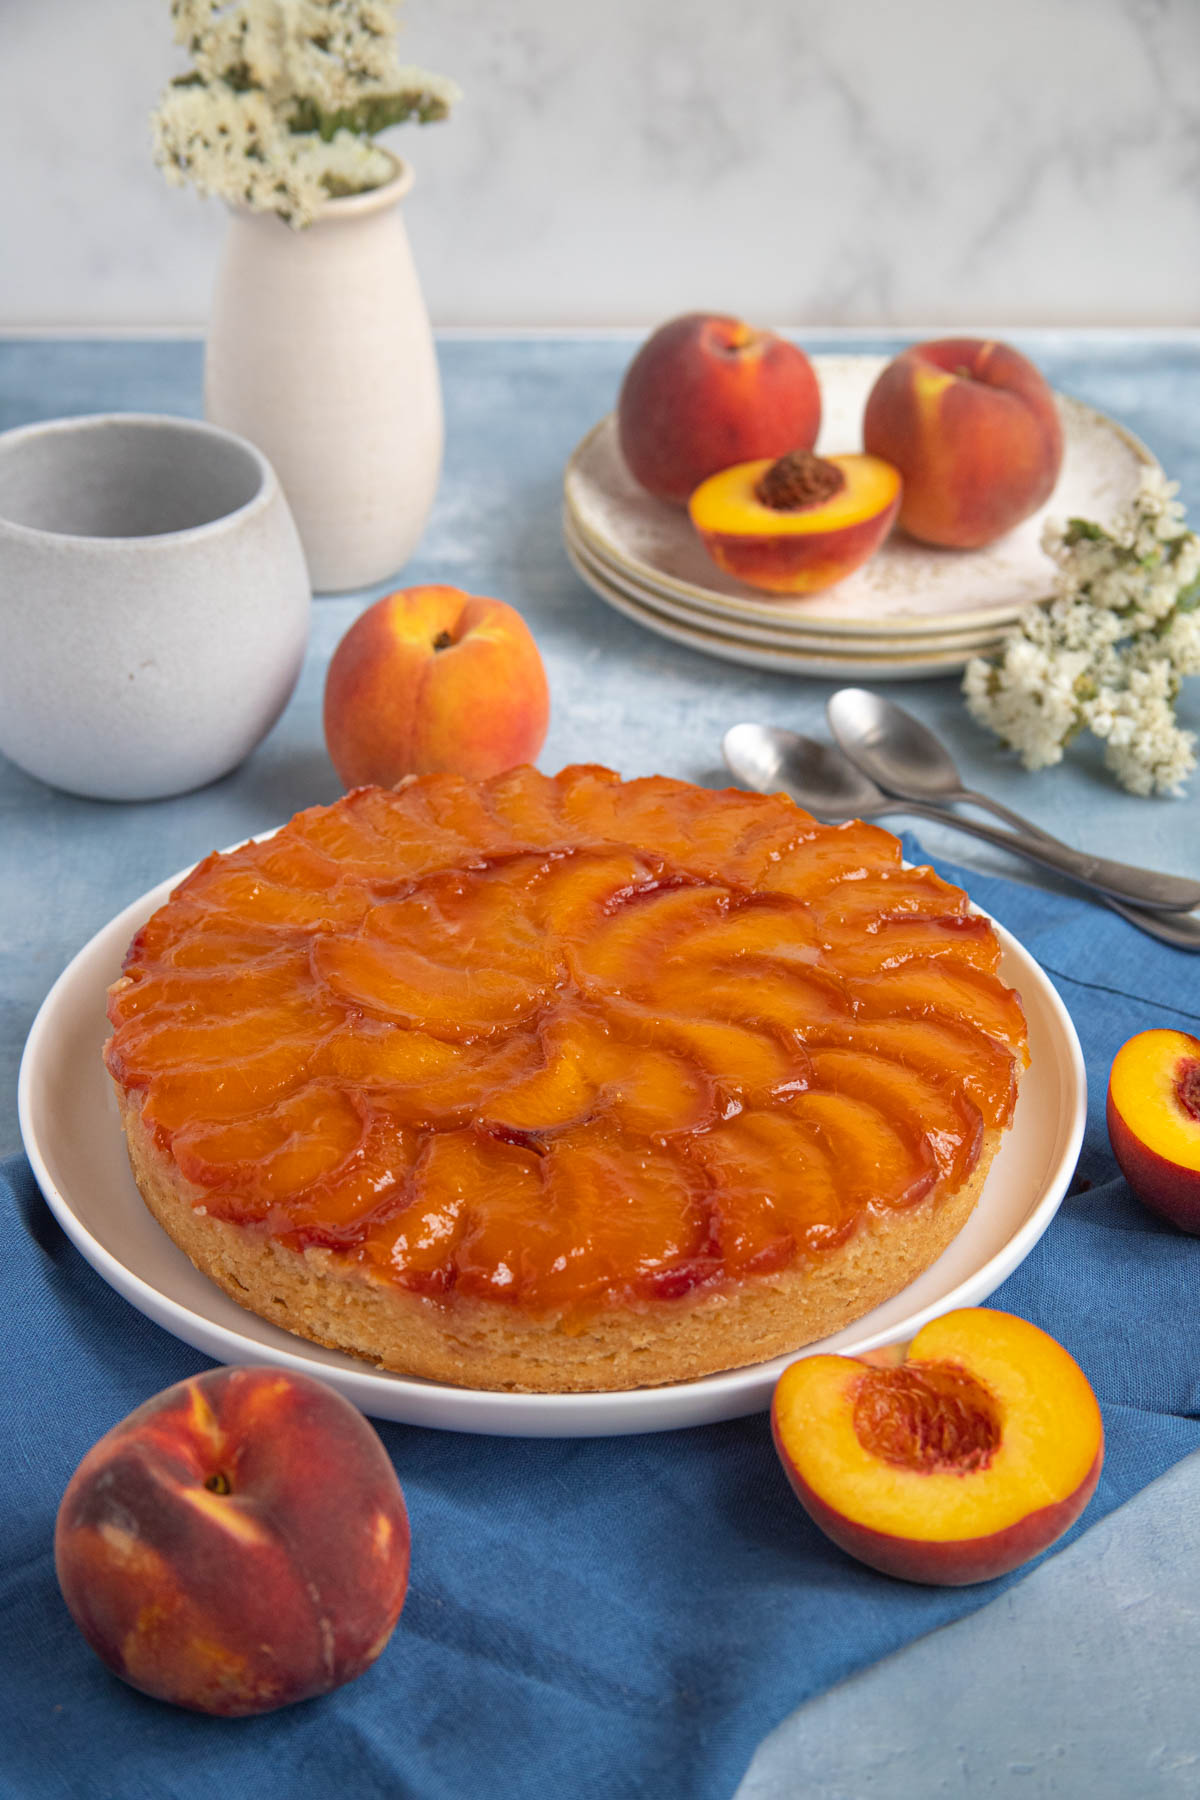 Peach Bourbon Upside Down Cake on a platter surrounded by fresh peaches with fresh flowers and a coffee mug in the background